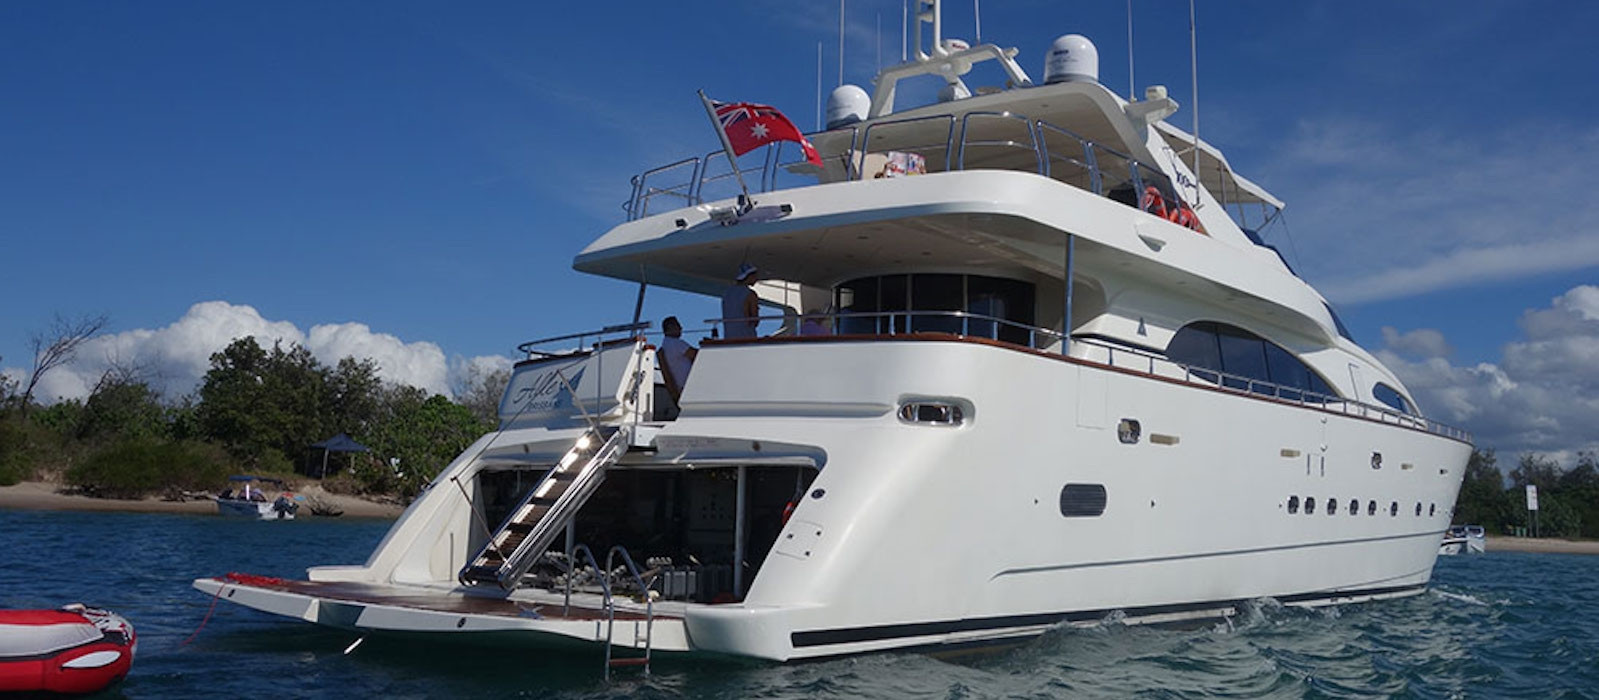 luxury boat hire on Lady Pamela stern view anchored